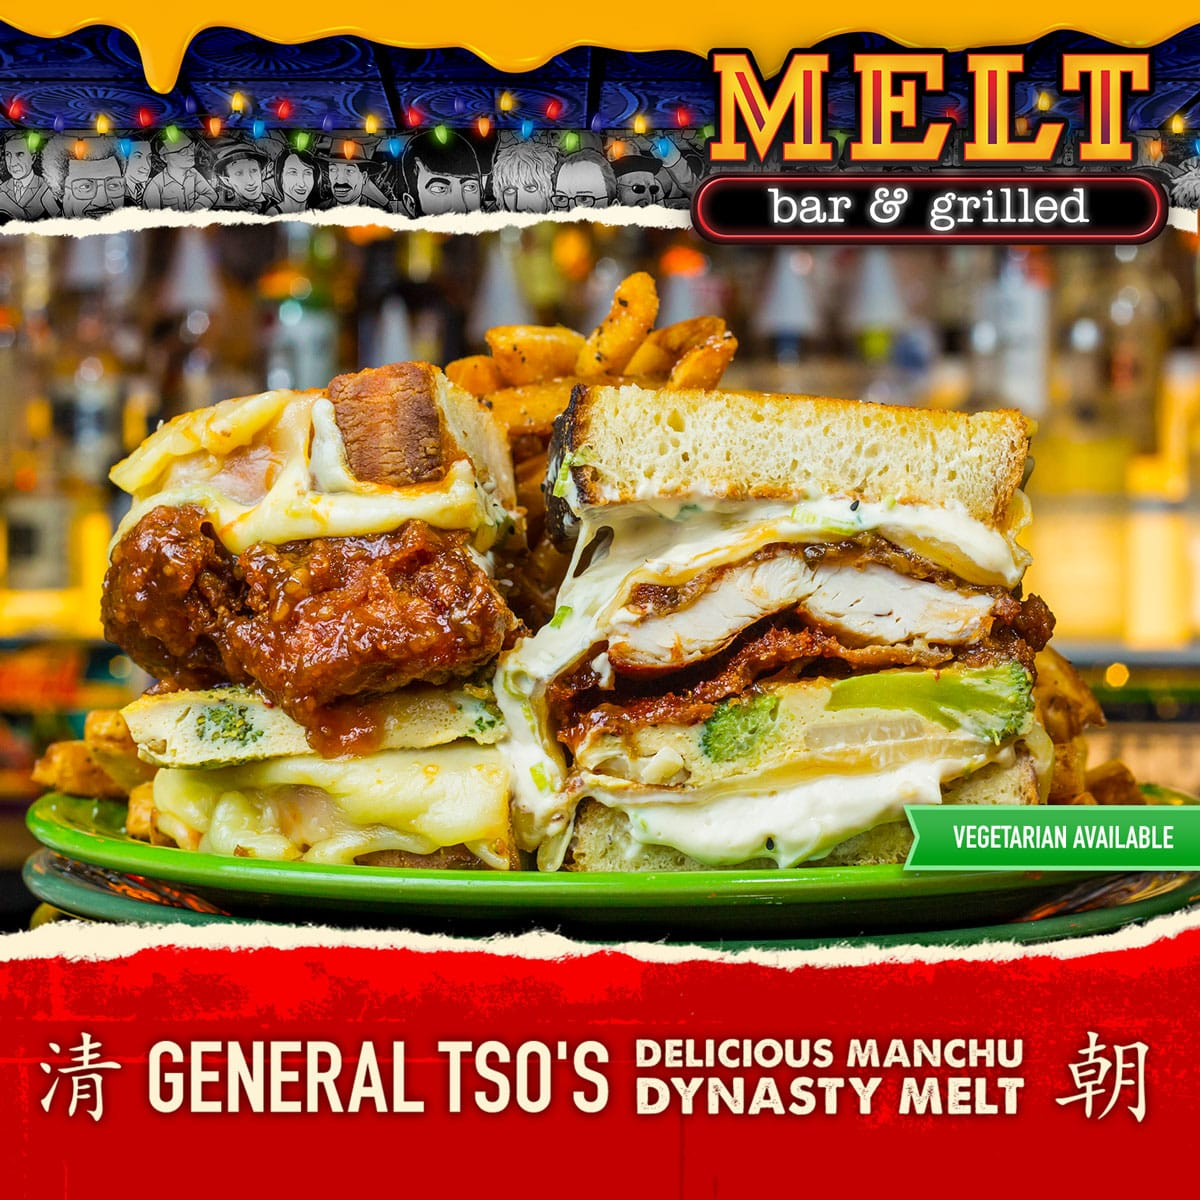 General Tso's Delicious Manchu Dynasty Melt